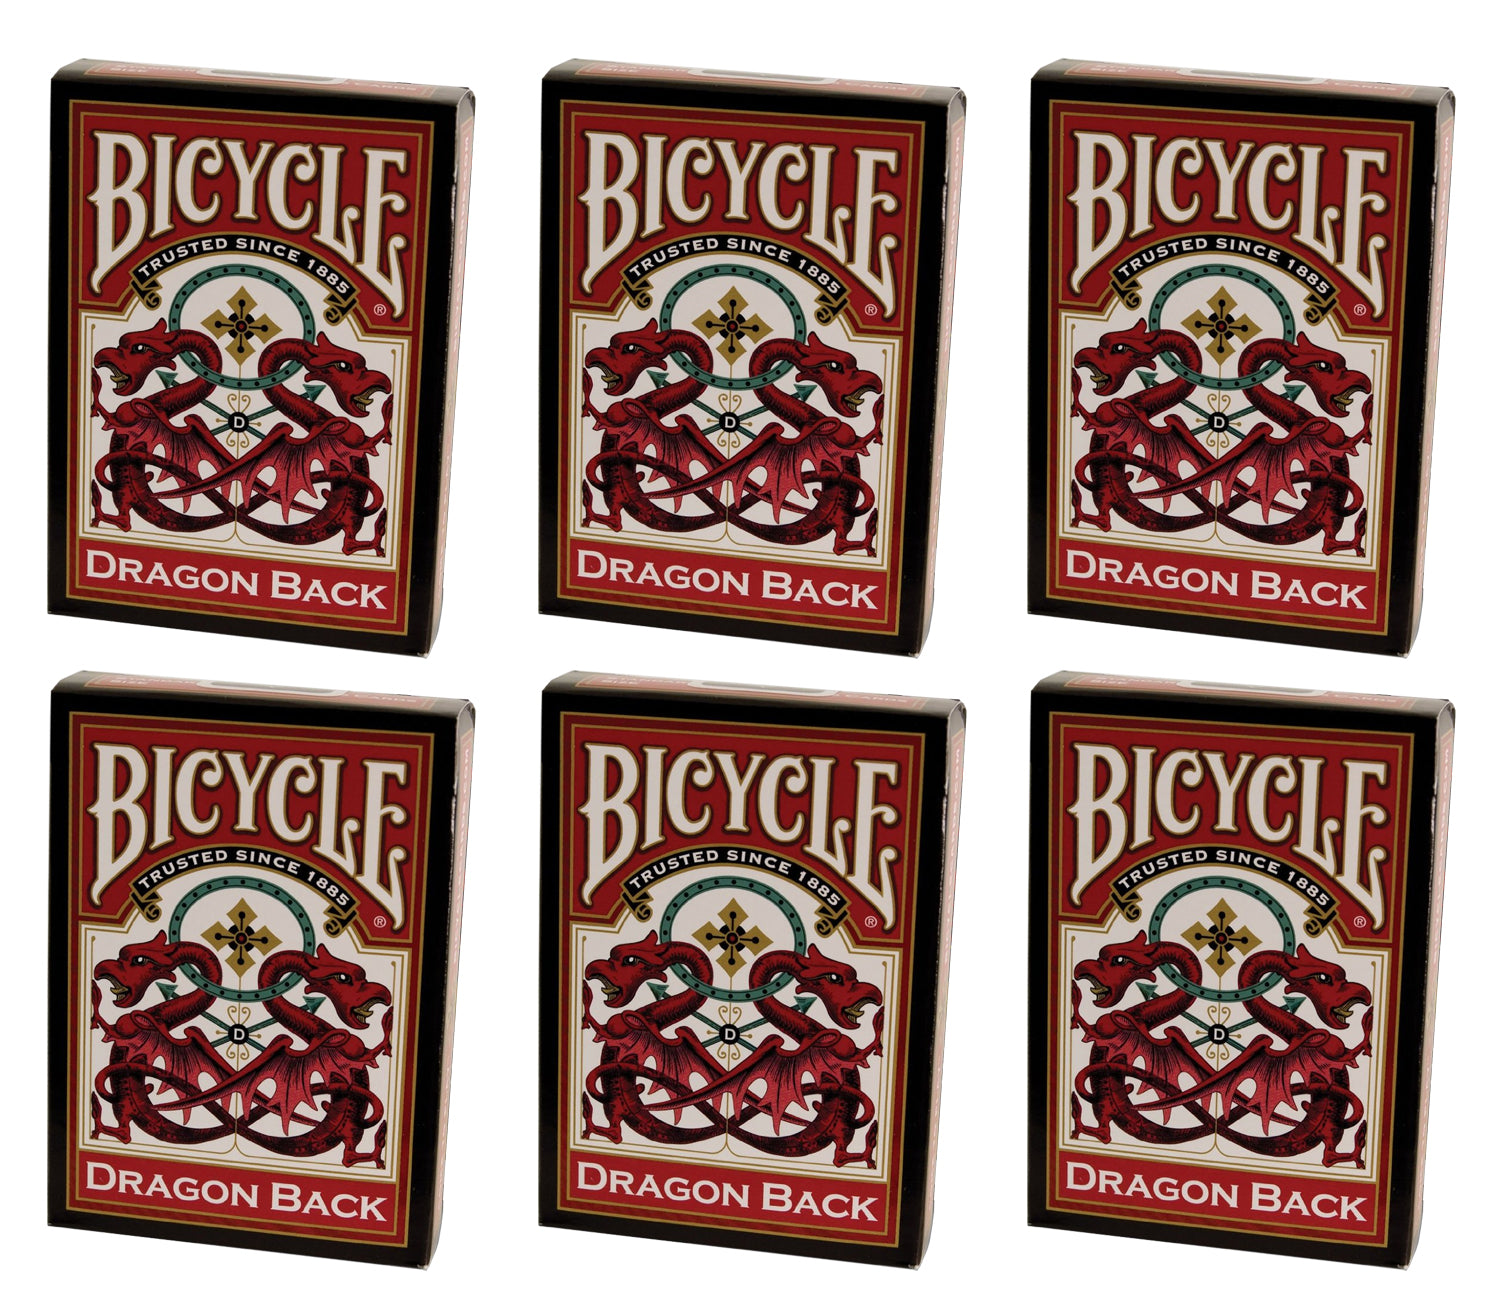 Bicycle Dragon Back Playing Cards - 6 Sealed Red Decks